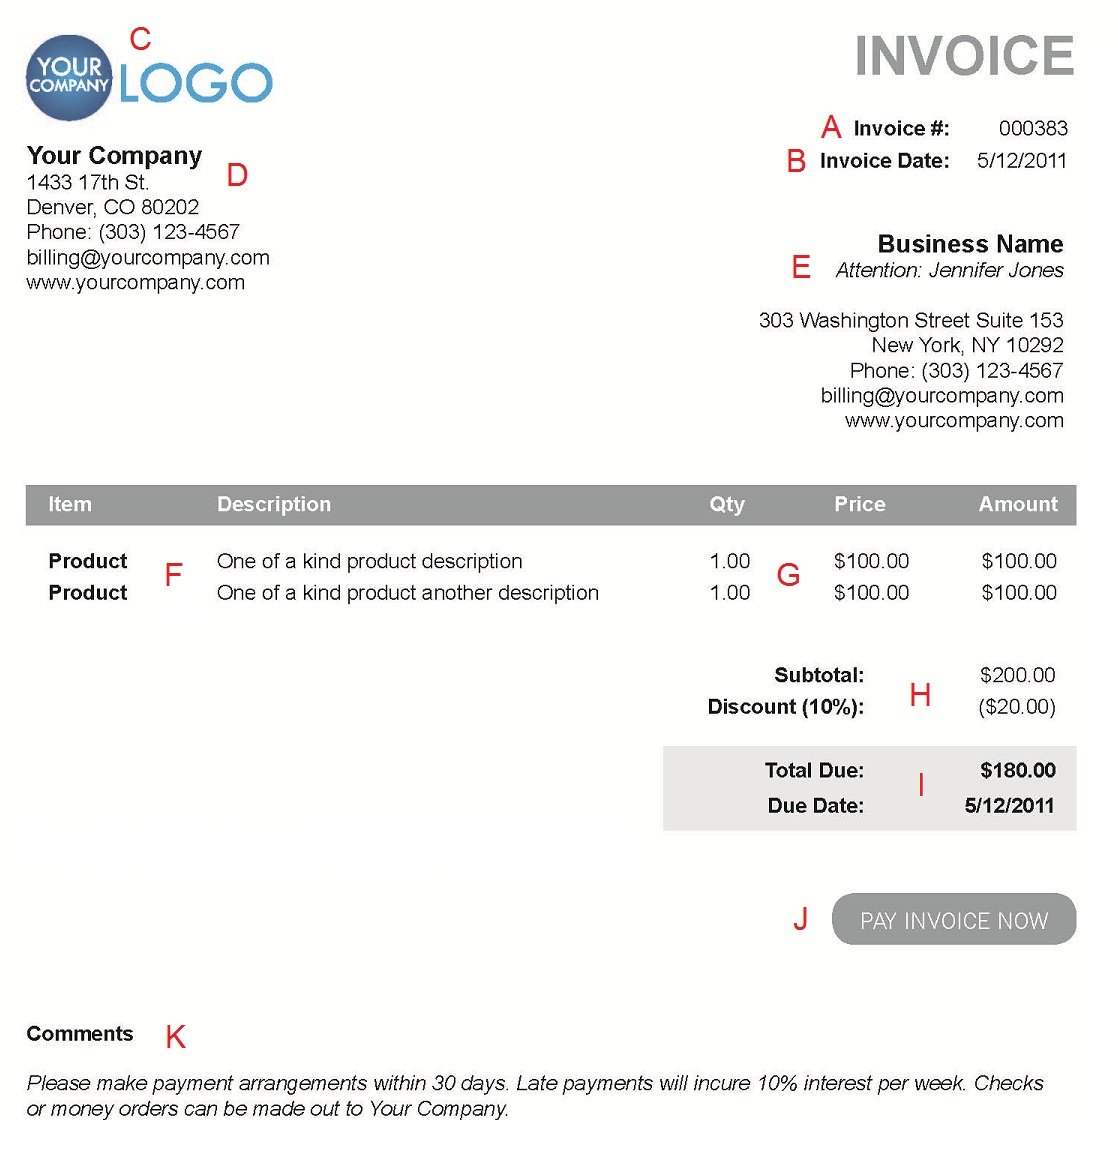 Shopdesignsus  Scenic The  Different Sections Of An Electronic Payment Invoice With Great A  With Lovely Template For Invoices Also Blank Auto Repair Invoice In Addition How To Email An Invoice And Paypal Send An Invoice As Well As Wordpress Invoice Plugin Additionally Invoice Program For Mac From Paysimplecom With Shopdesignsus  Great The  Different Sections Of An Electronic Payment Invoice With Lovely A  And Scenic Template For Invoices Also Blank Auto Repair Invoice In Addition How To Email An Invoice From Paysimplecom